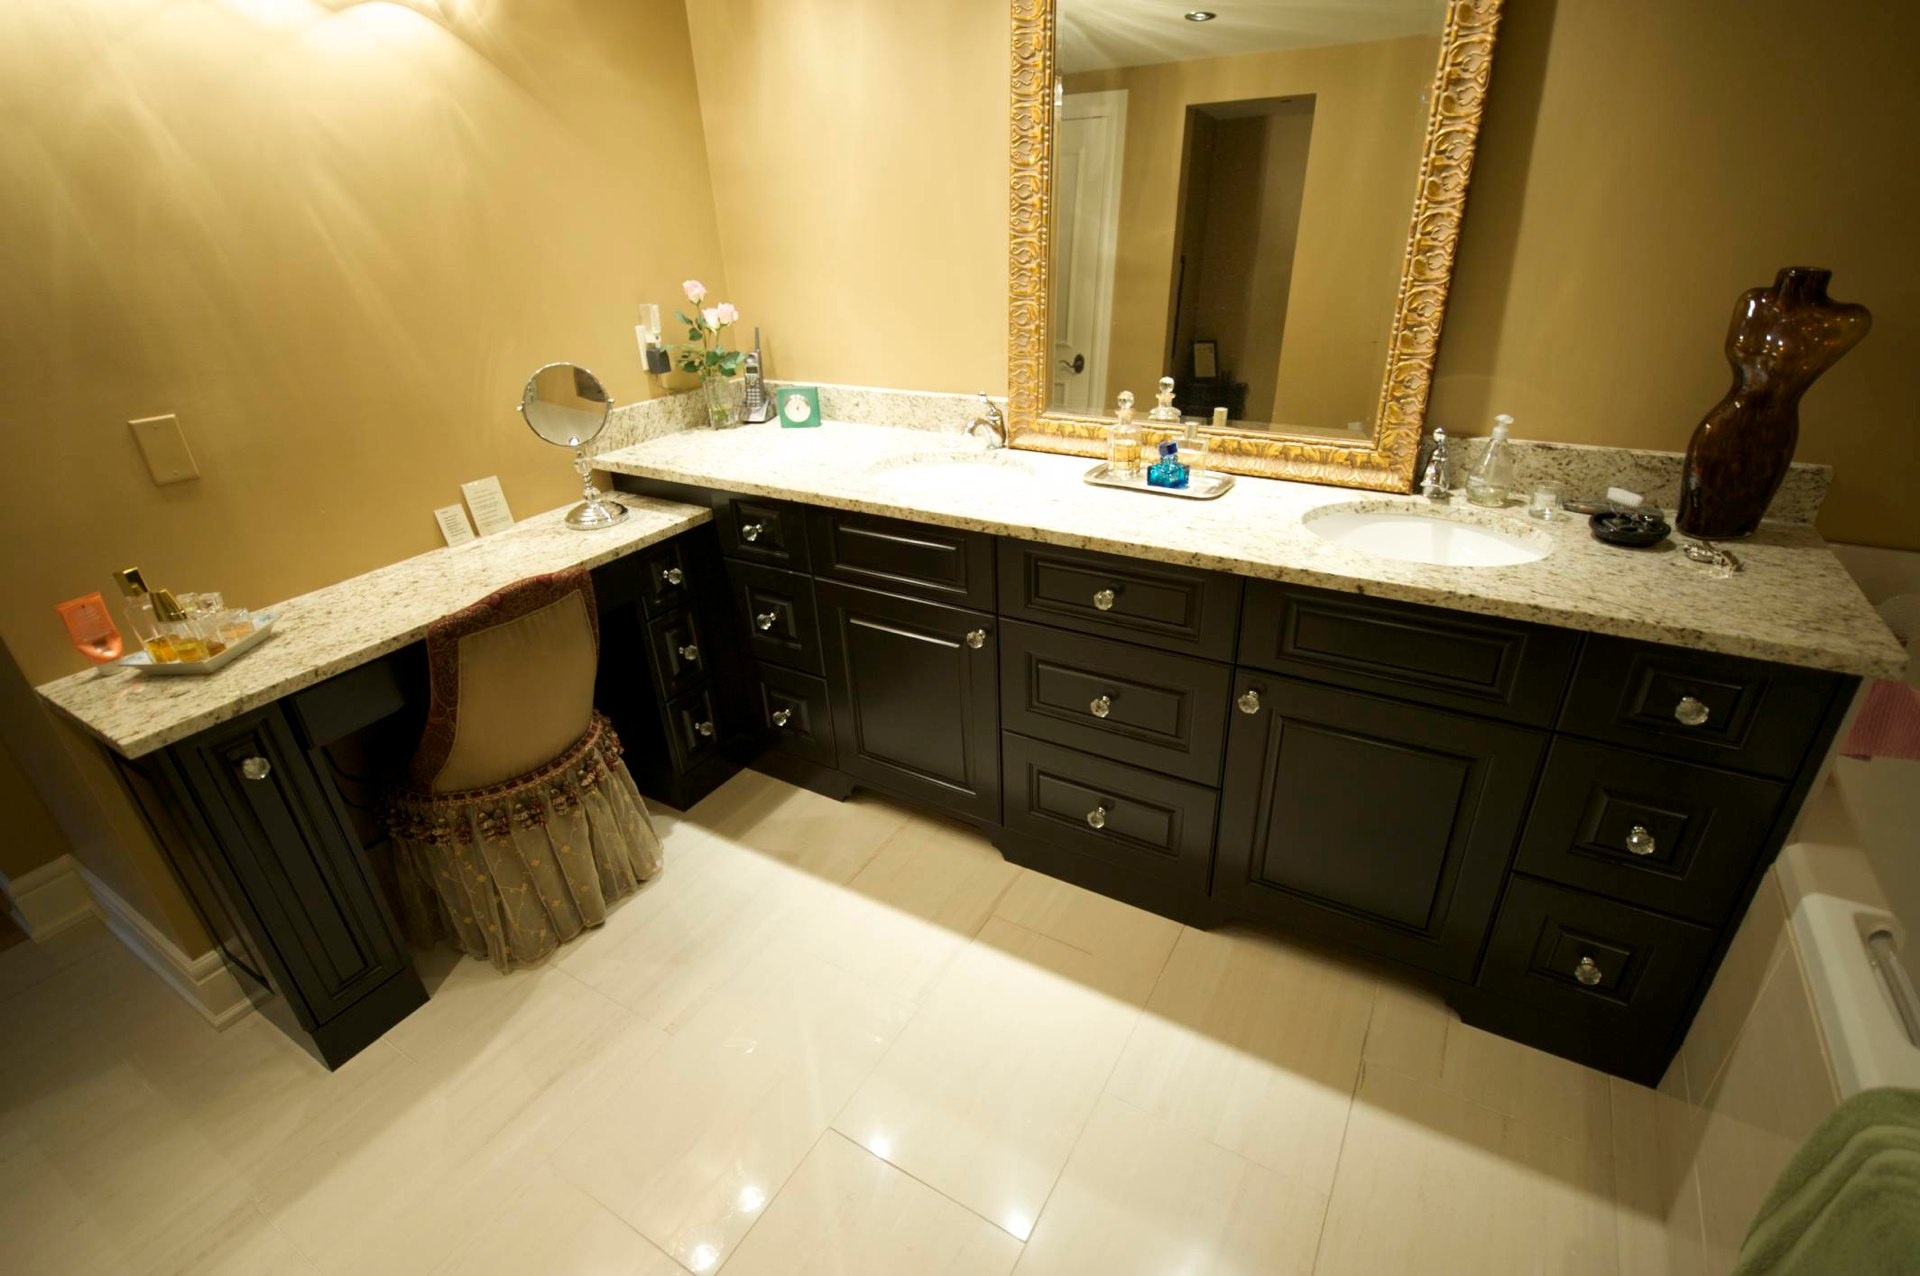 Bathroom cabinets by evolve kitchens for Bathroom cabinets quebec